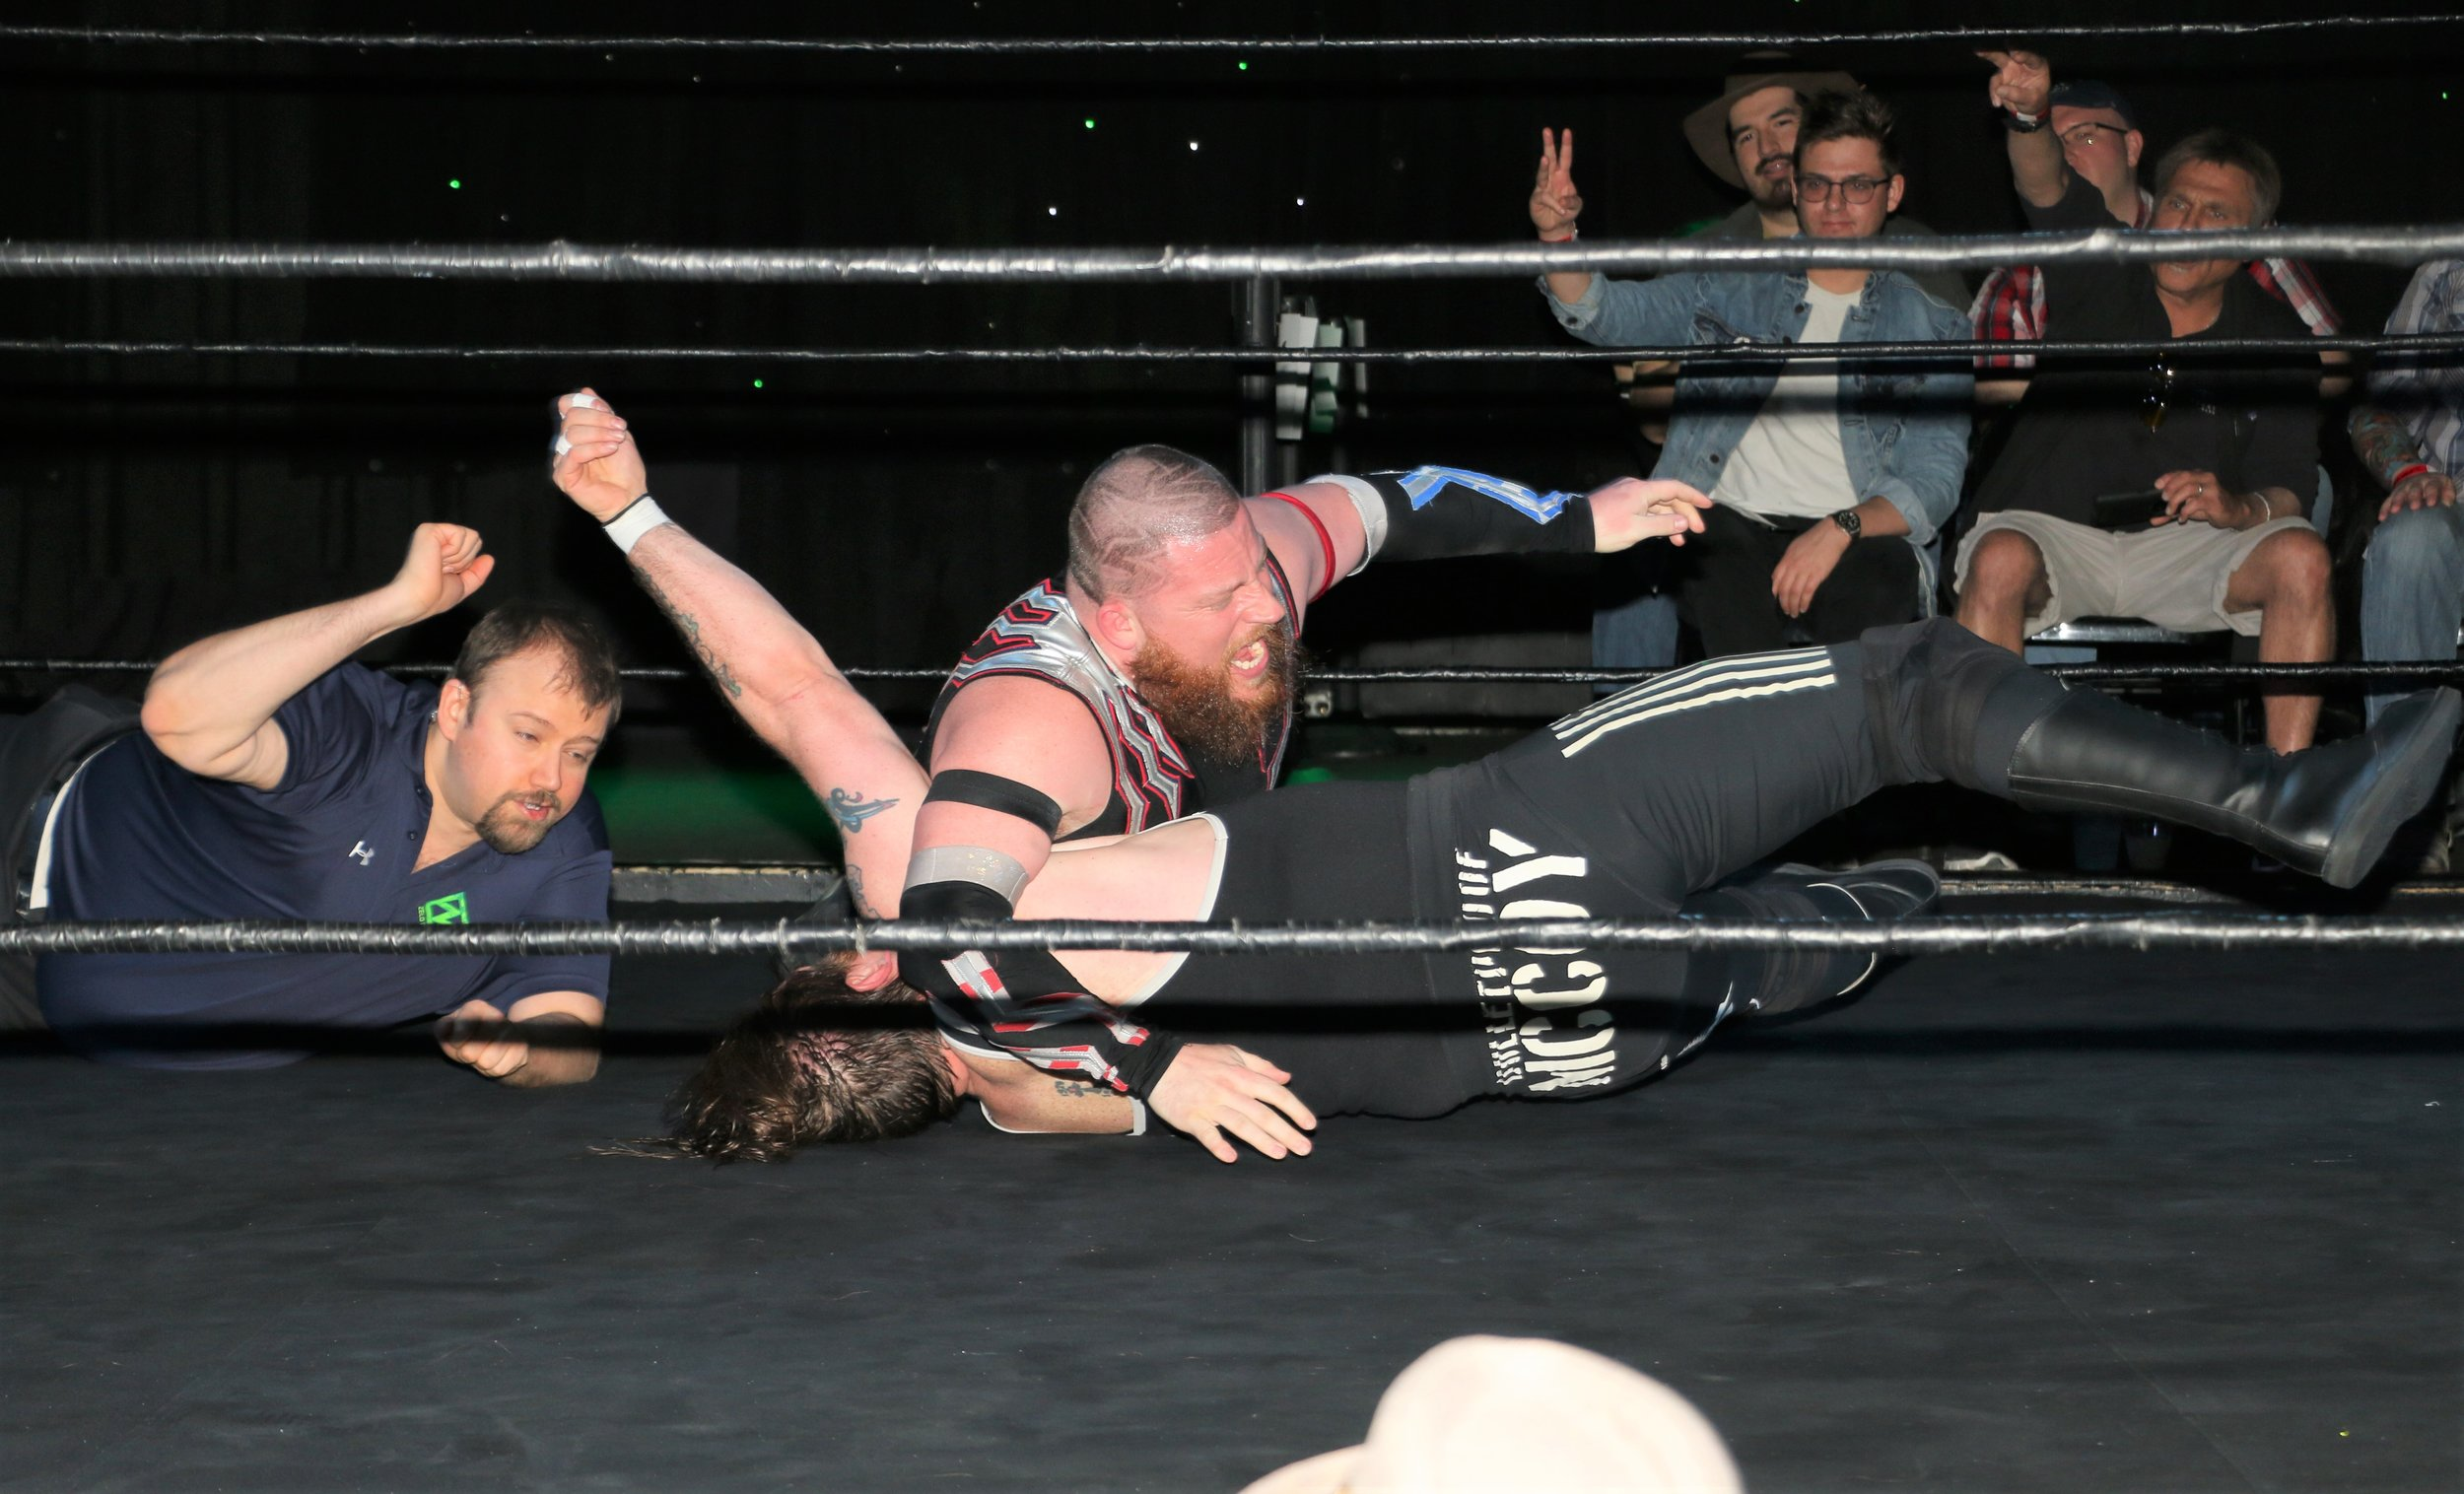 """Bulletproof"" Ben McCoy kicks out the pinfall and Gringo Loco can't believe it."